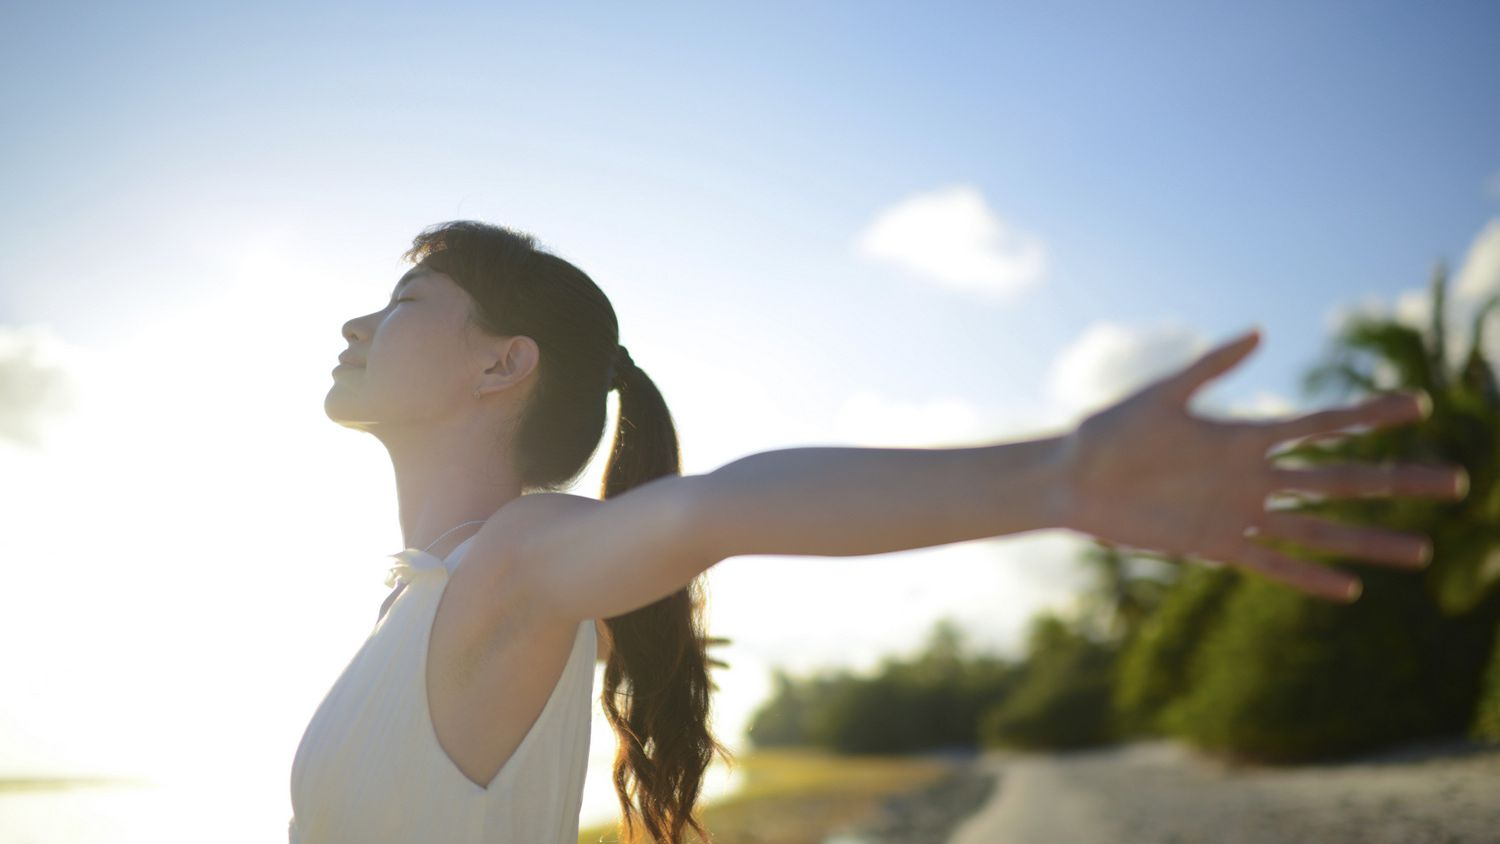 How to Breathe for Better Walking